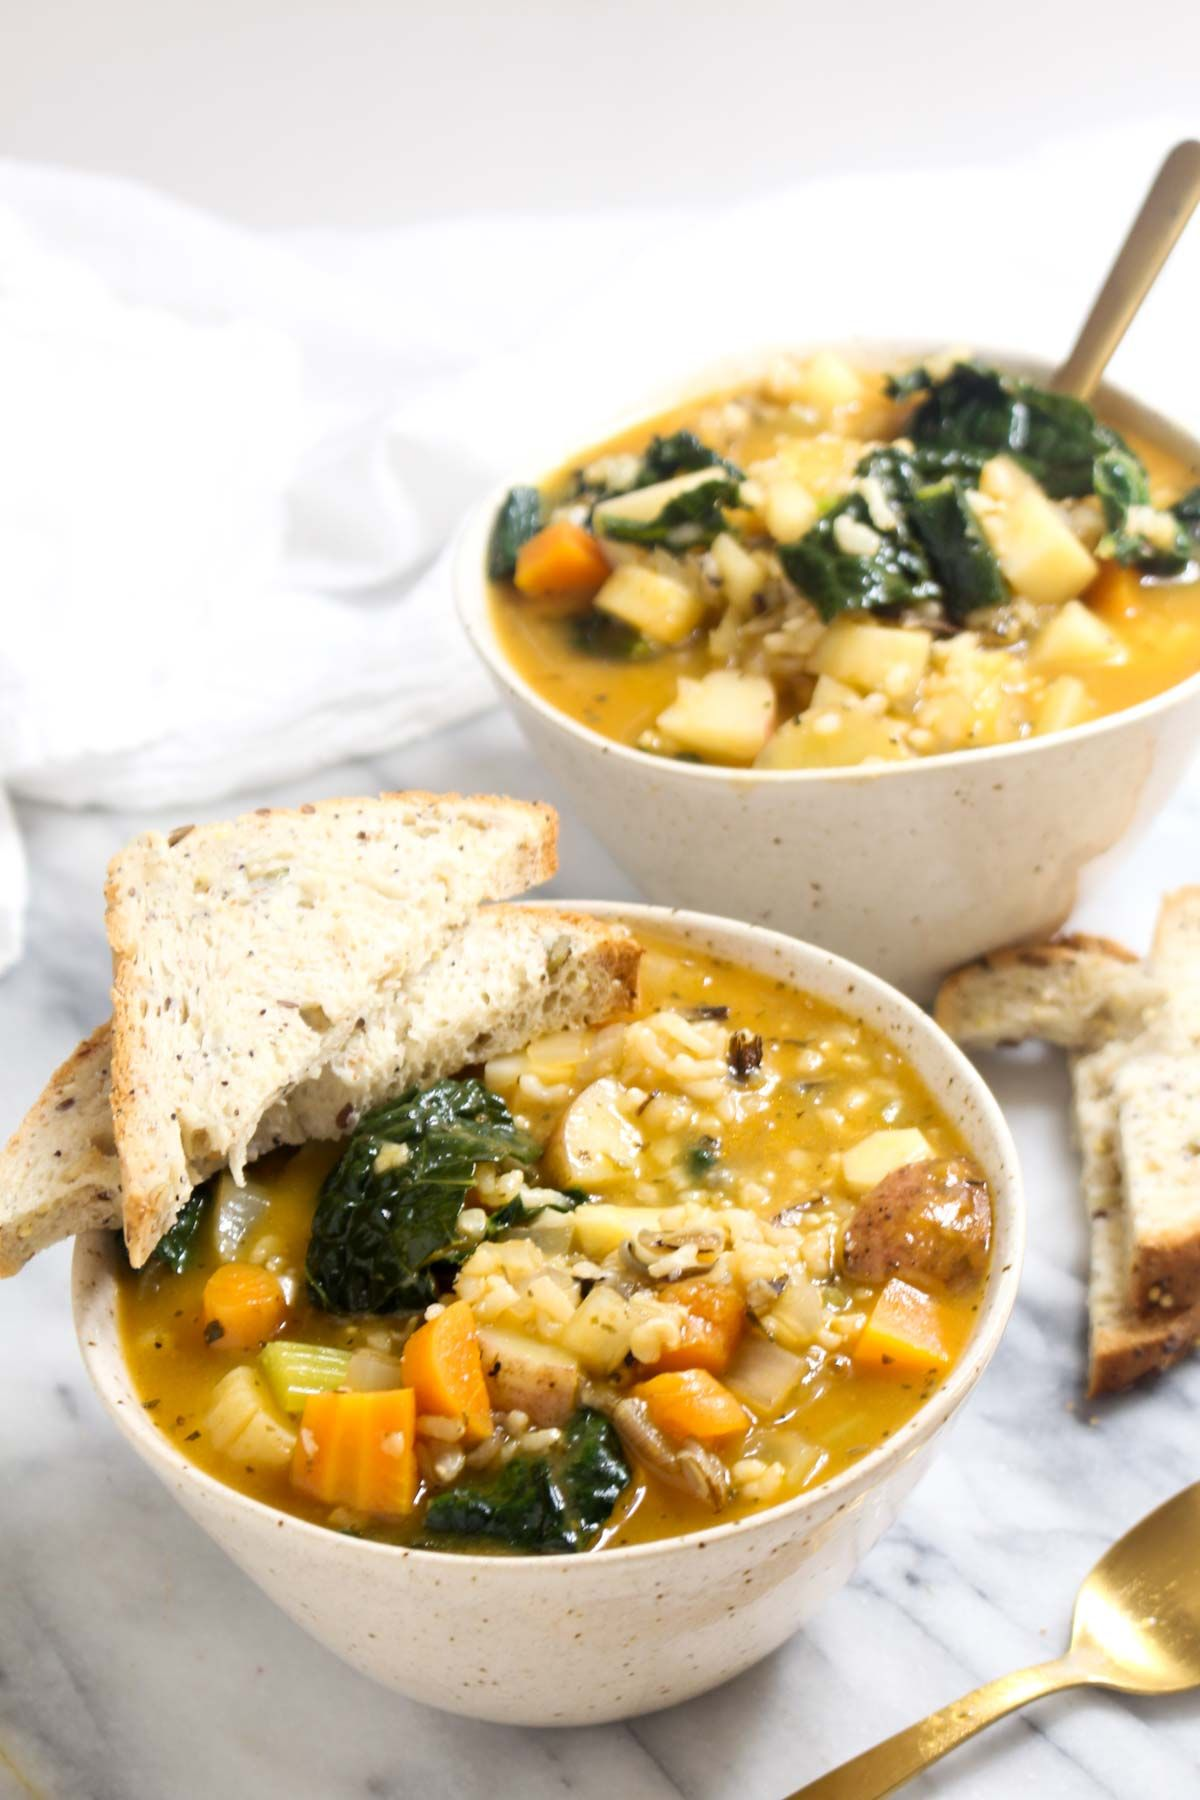 Winter vegetable soup for cold season